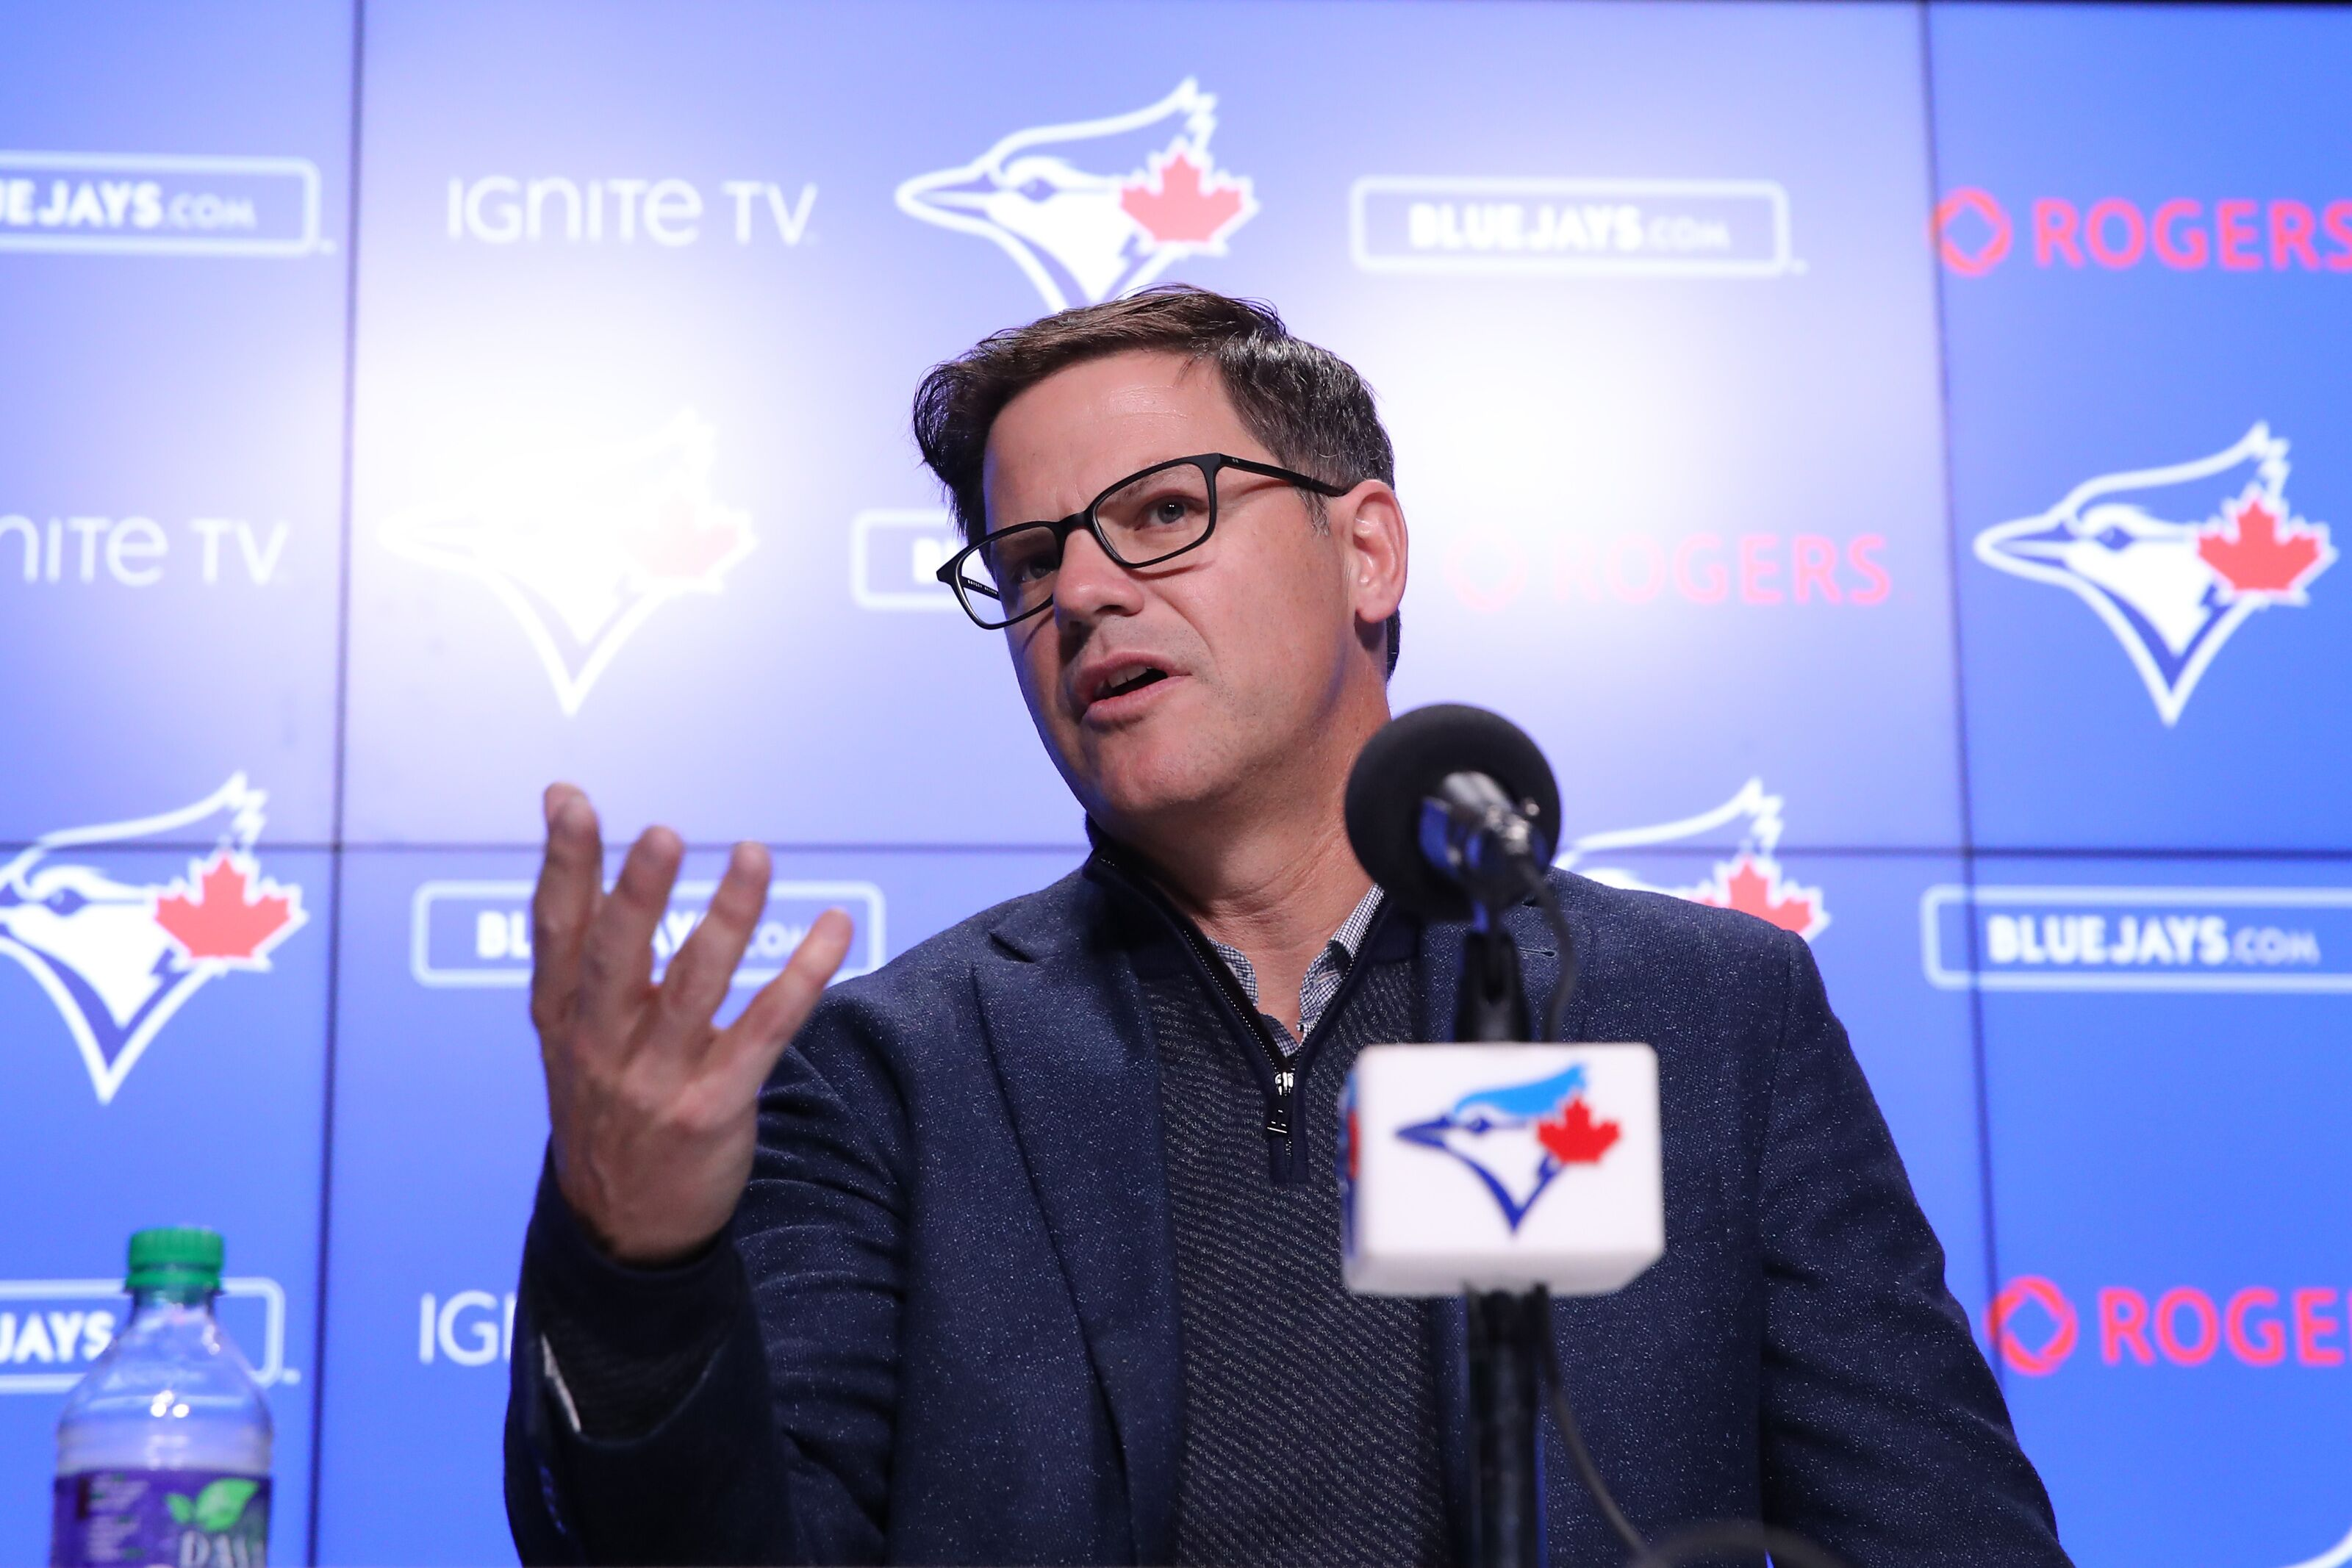 Blue Jays: Two chess moves down, Atkins may have to act quickly - Jays Journal